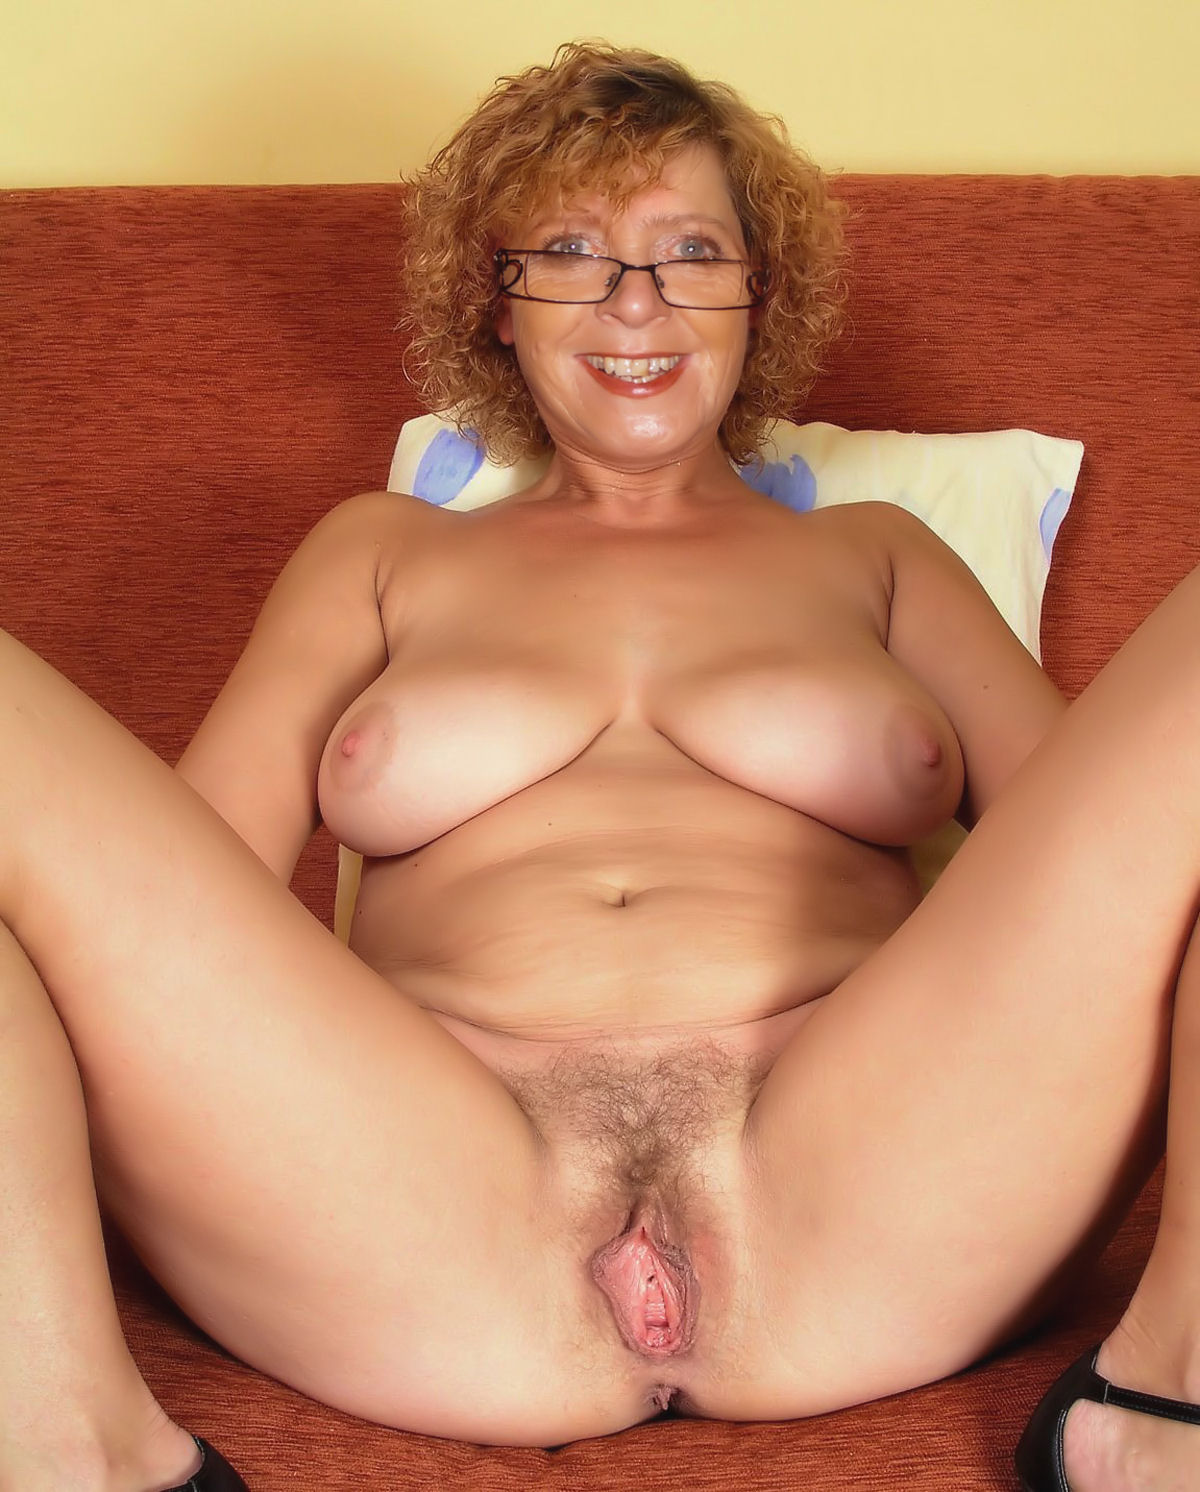 Mature blonde mom tits absolutely